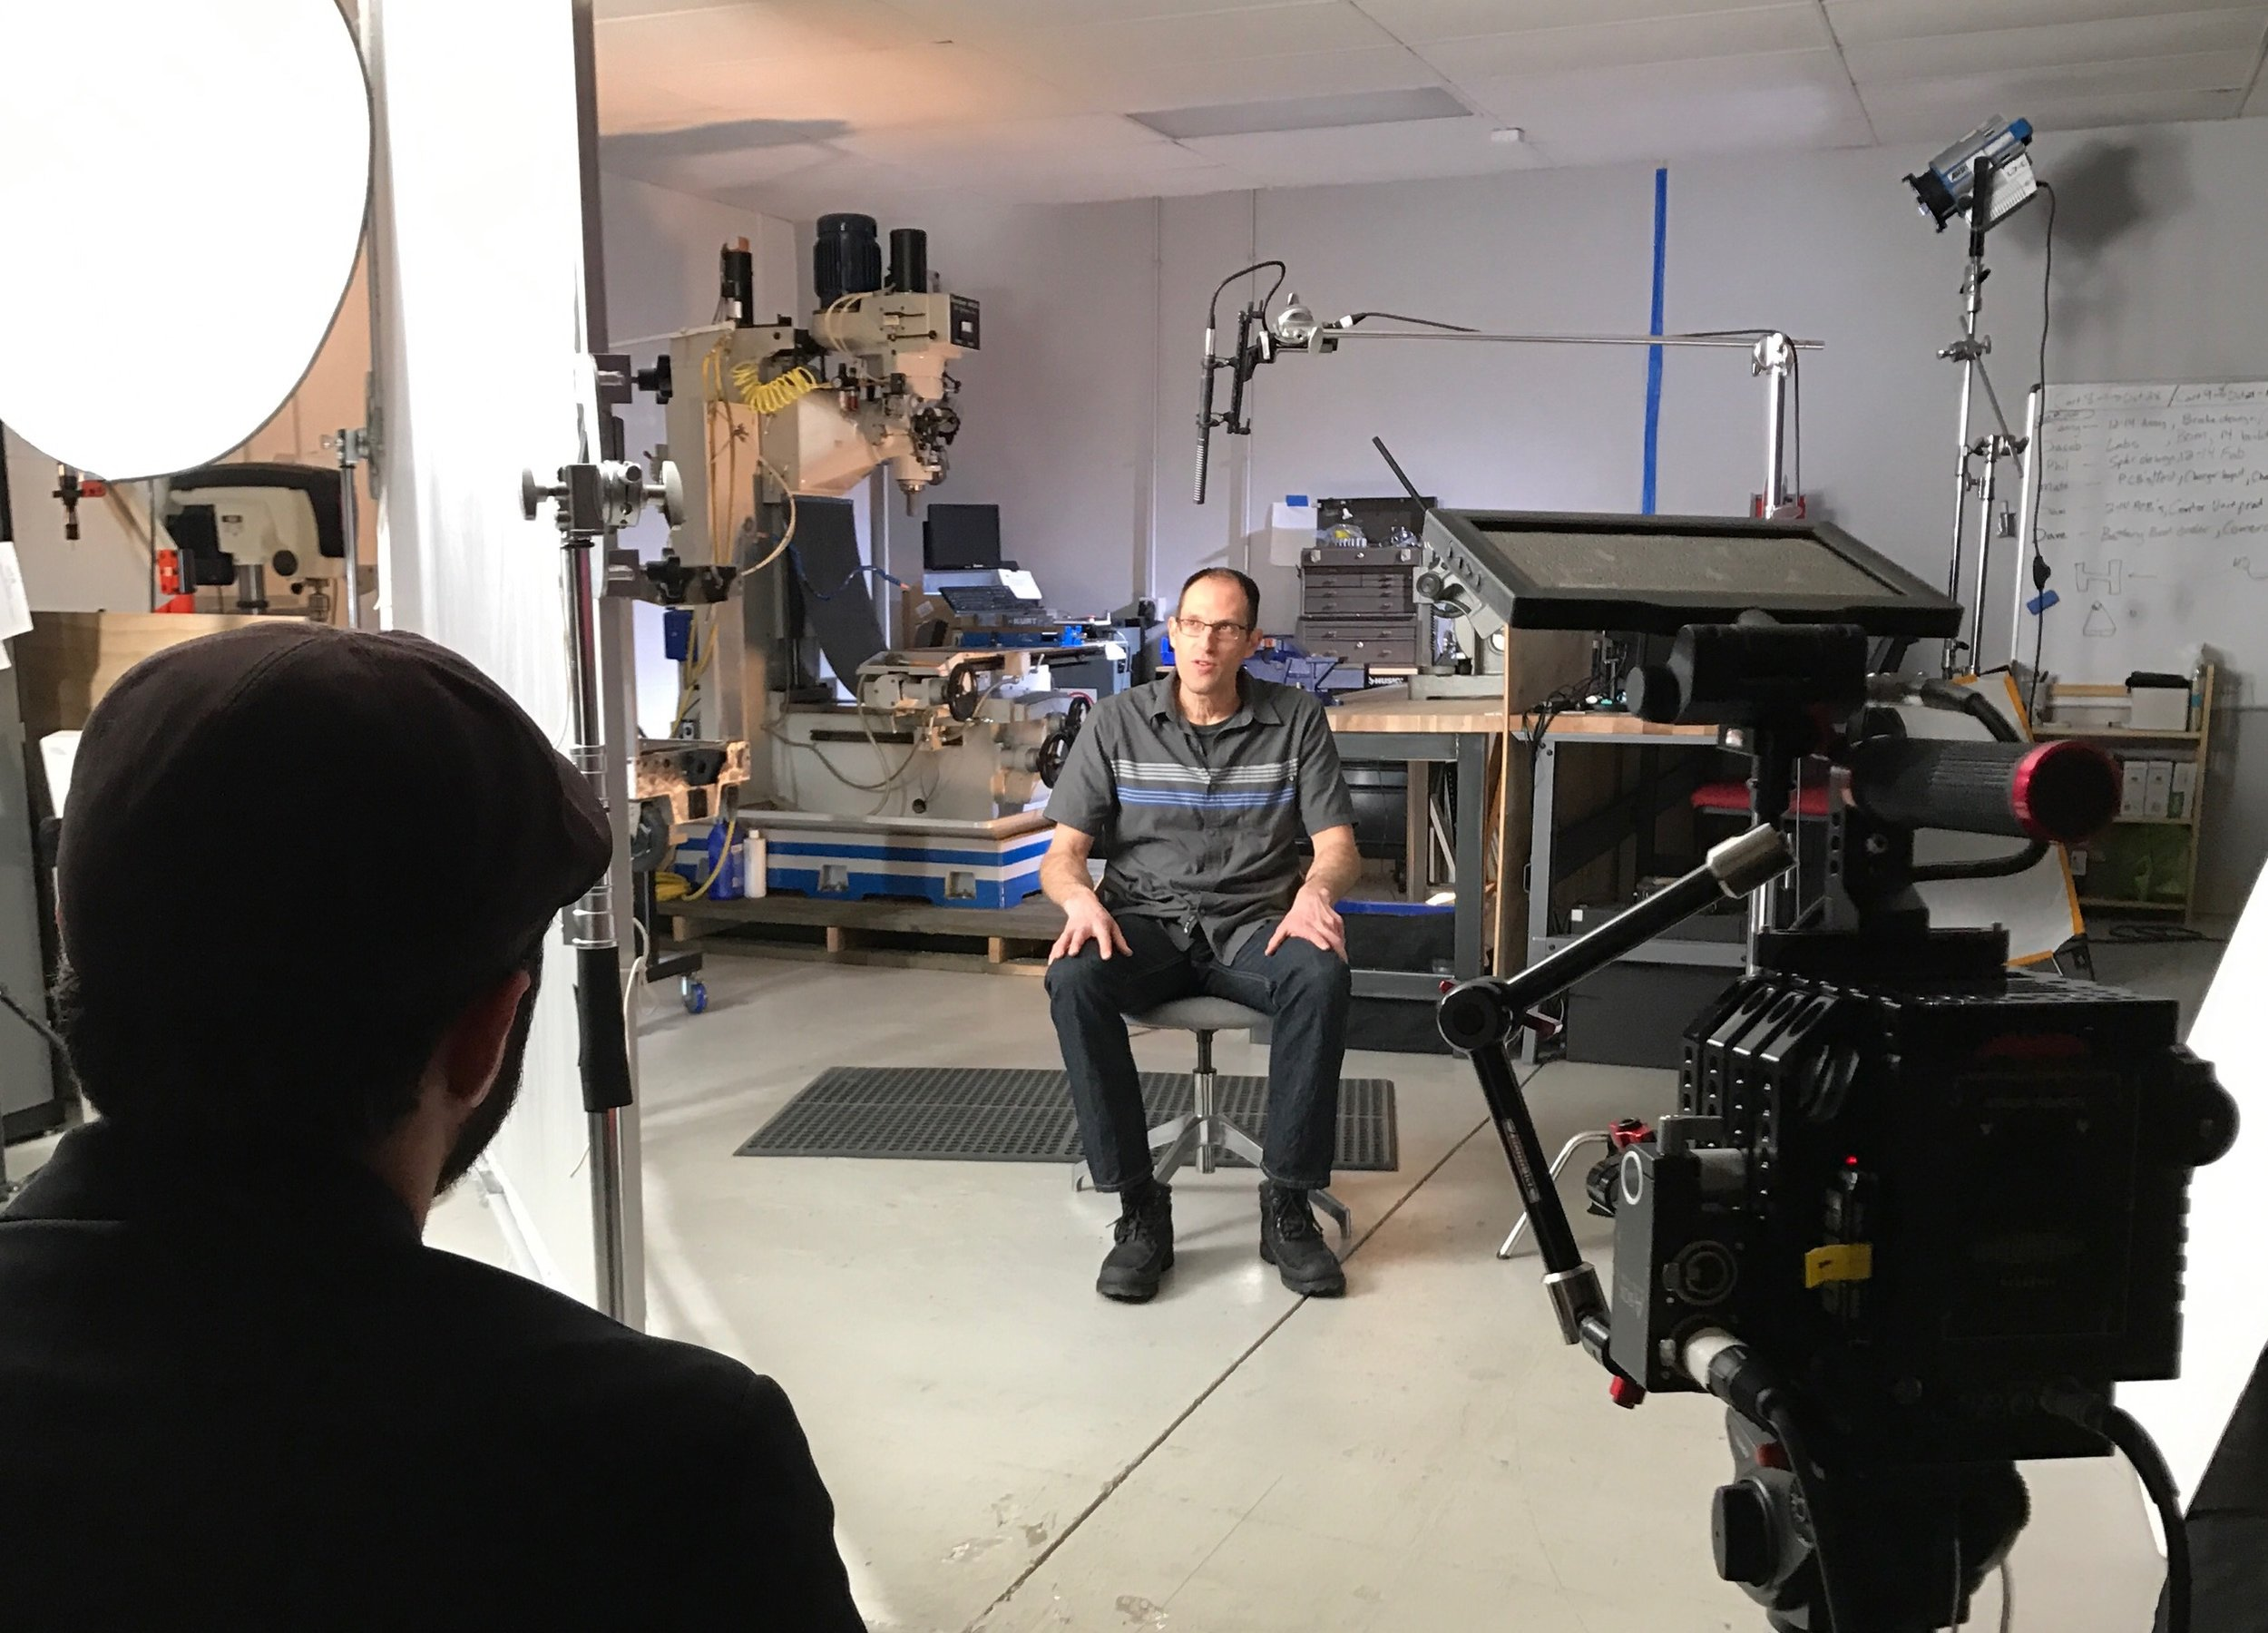 Seth Schaeffer, President and CEO of Hoptocopter™ Films, interviewing a Canvas employee on set in Boulder, Colorado.